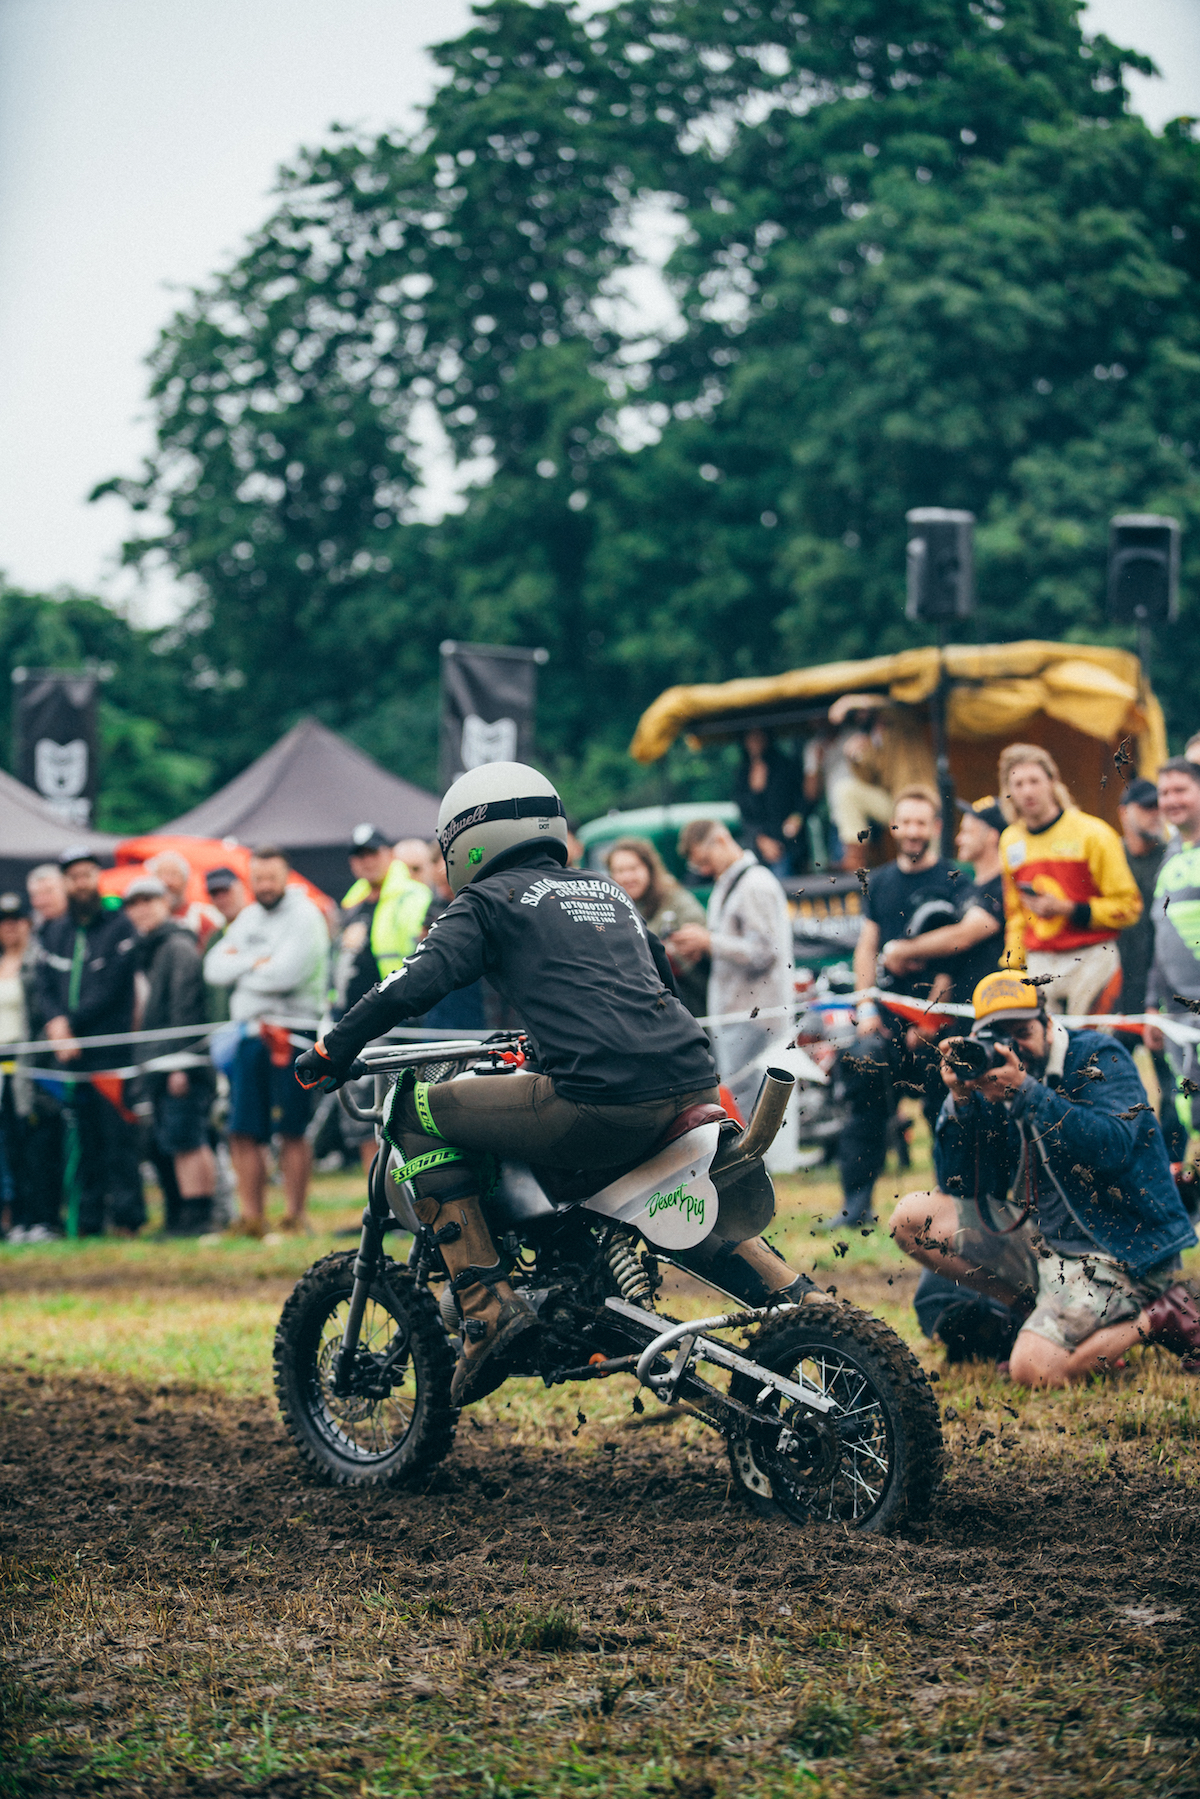 All manner of motorcycles take part in the races